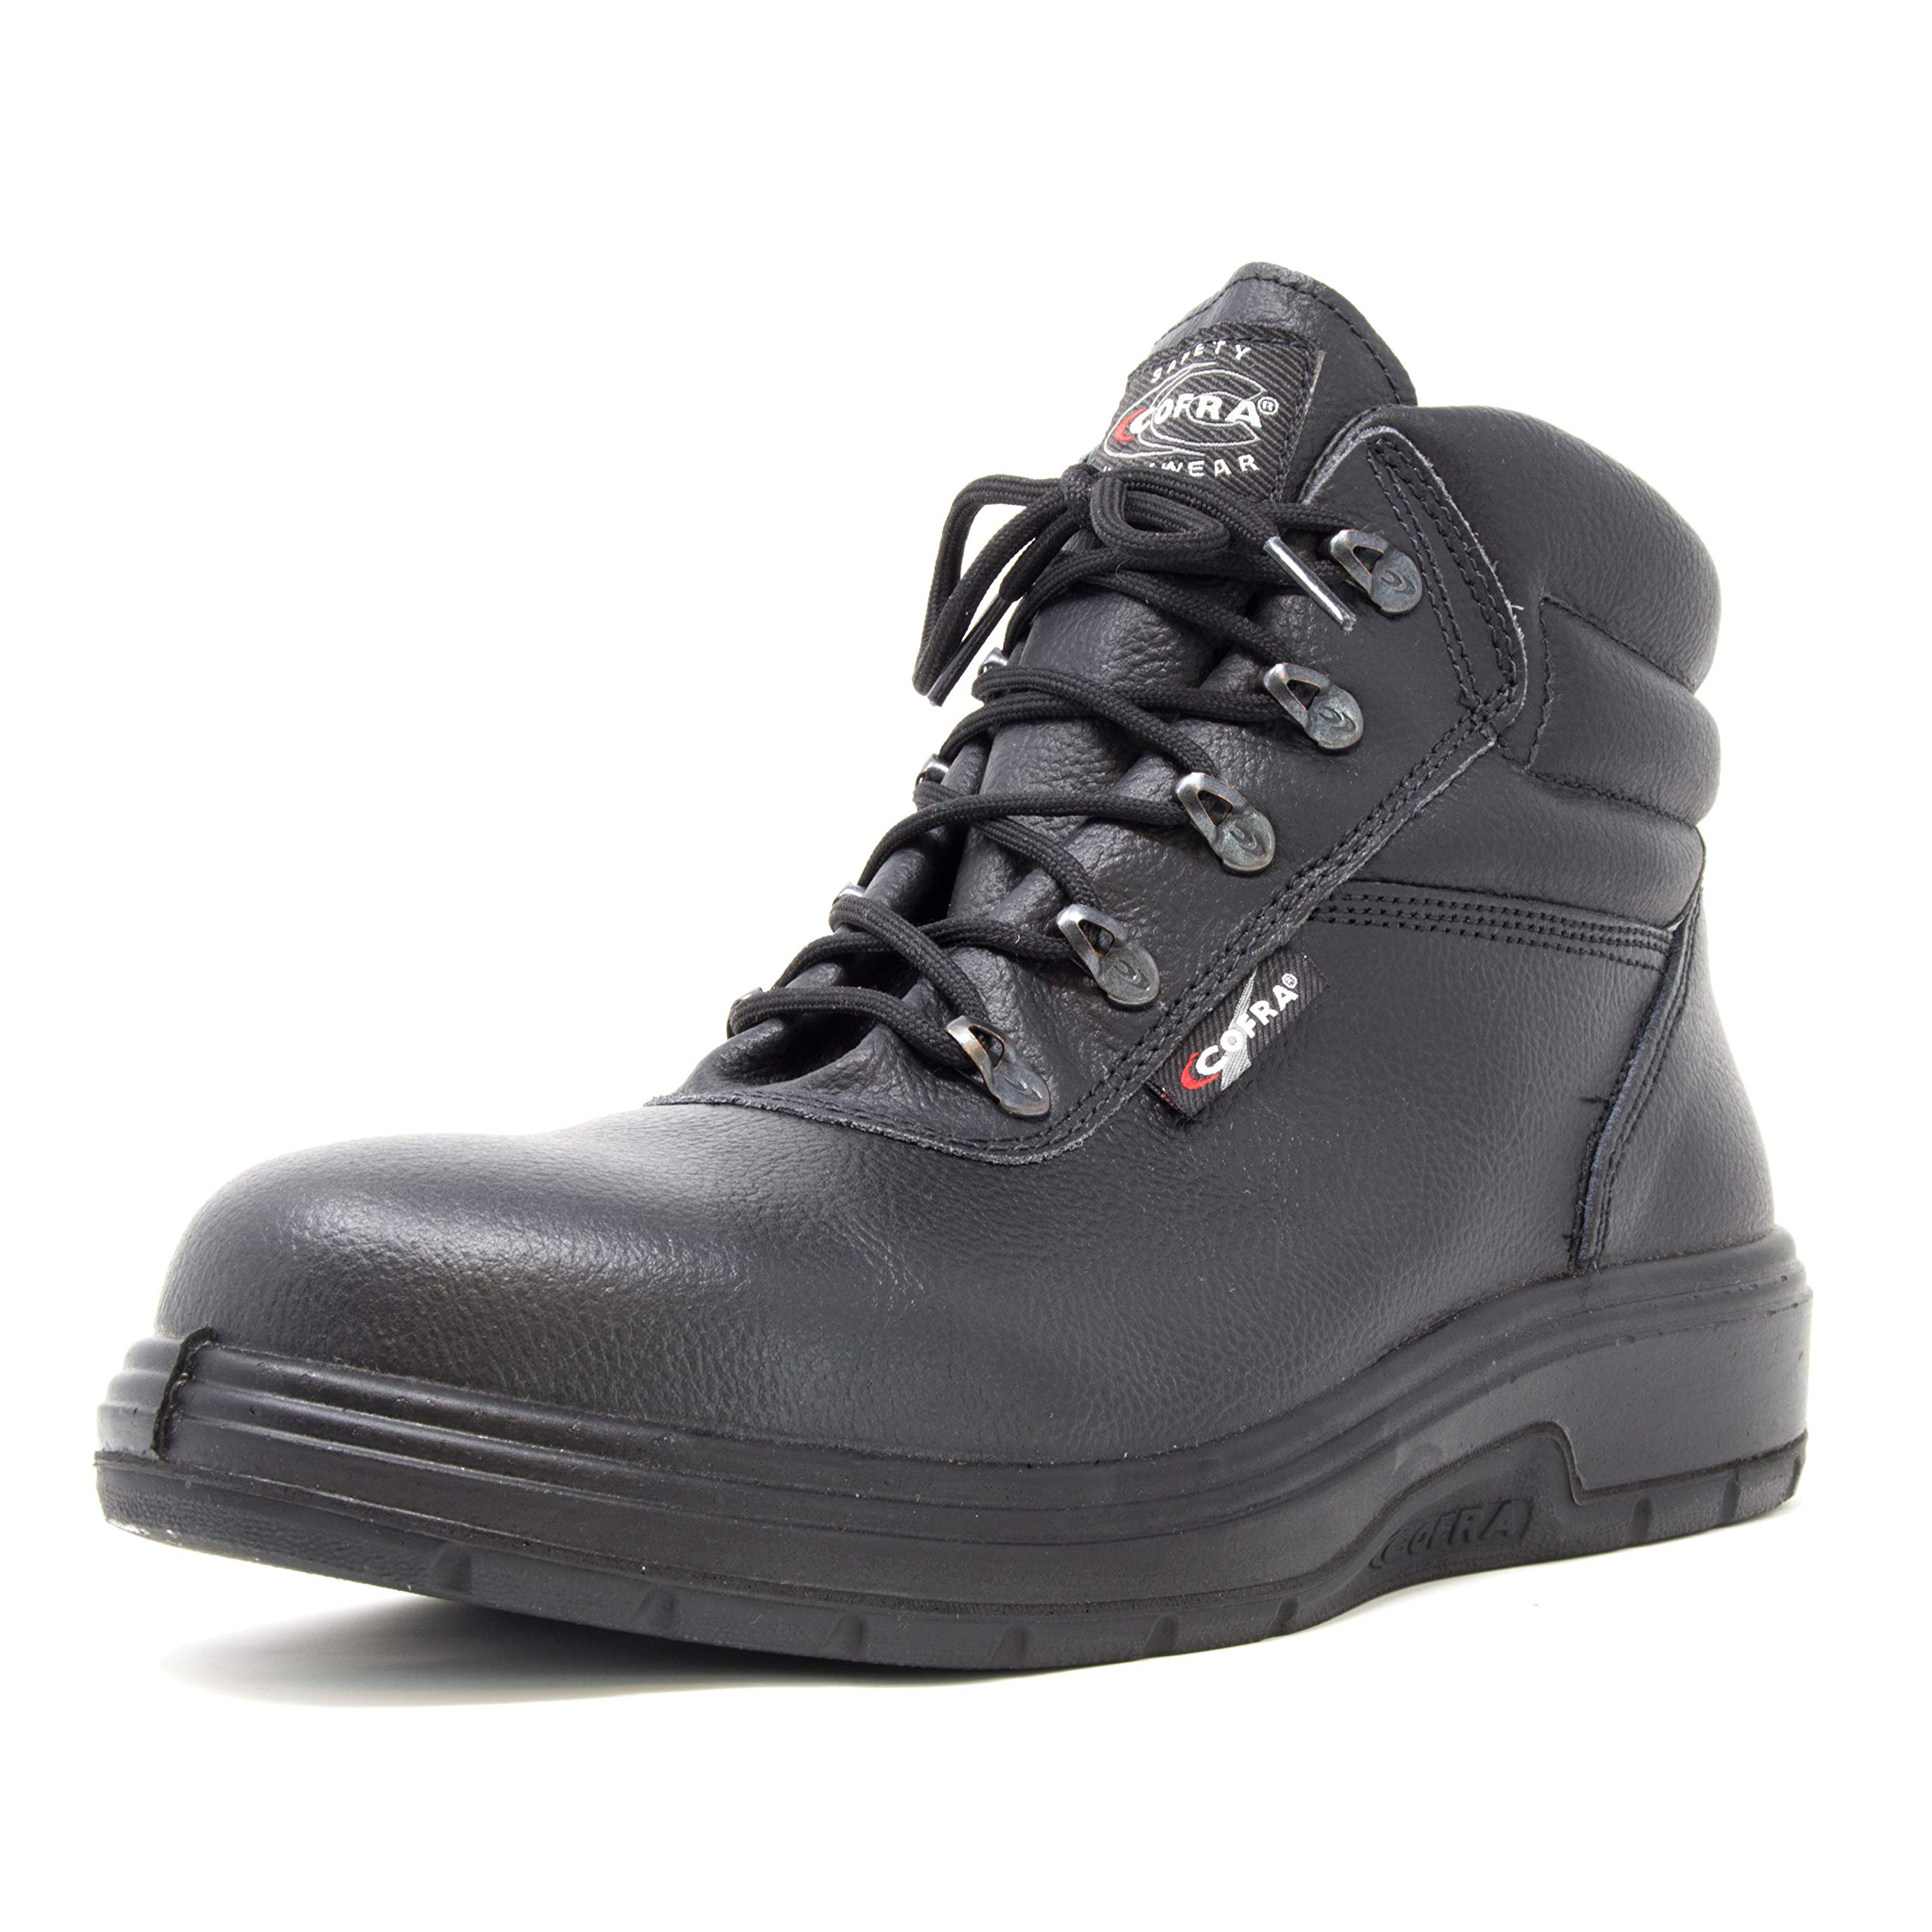 COFRA Leather Work Boots - NEW ASPHALT Treadless Footwear with Composite Safety Toe & Heat Defender Nitrile Rubber Outsole - Size 14